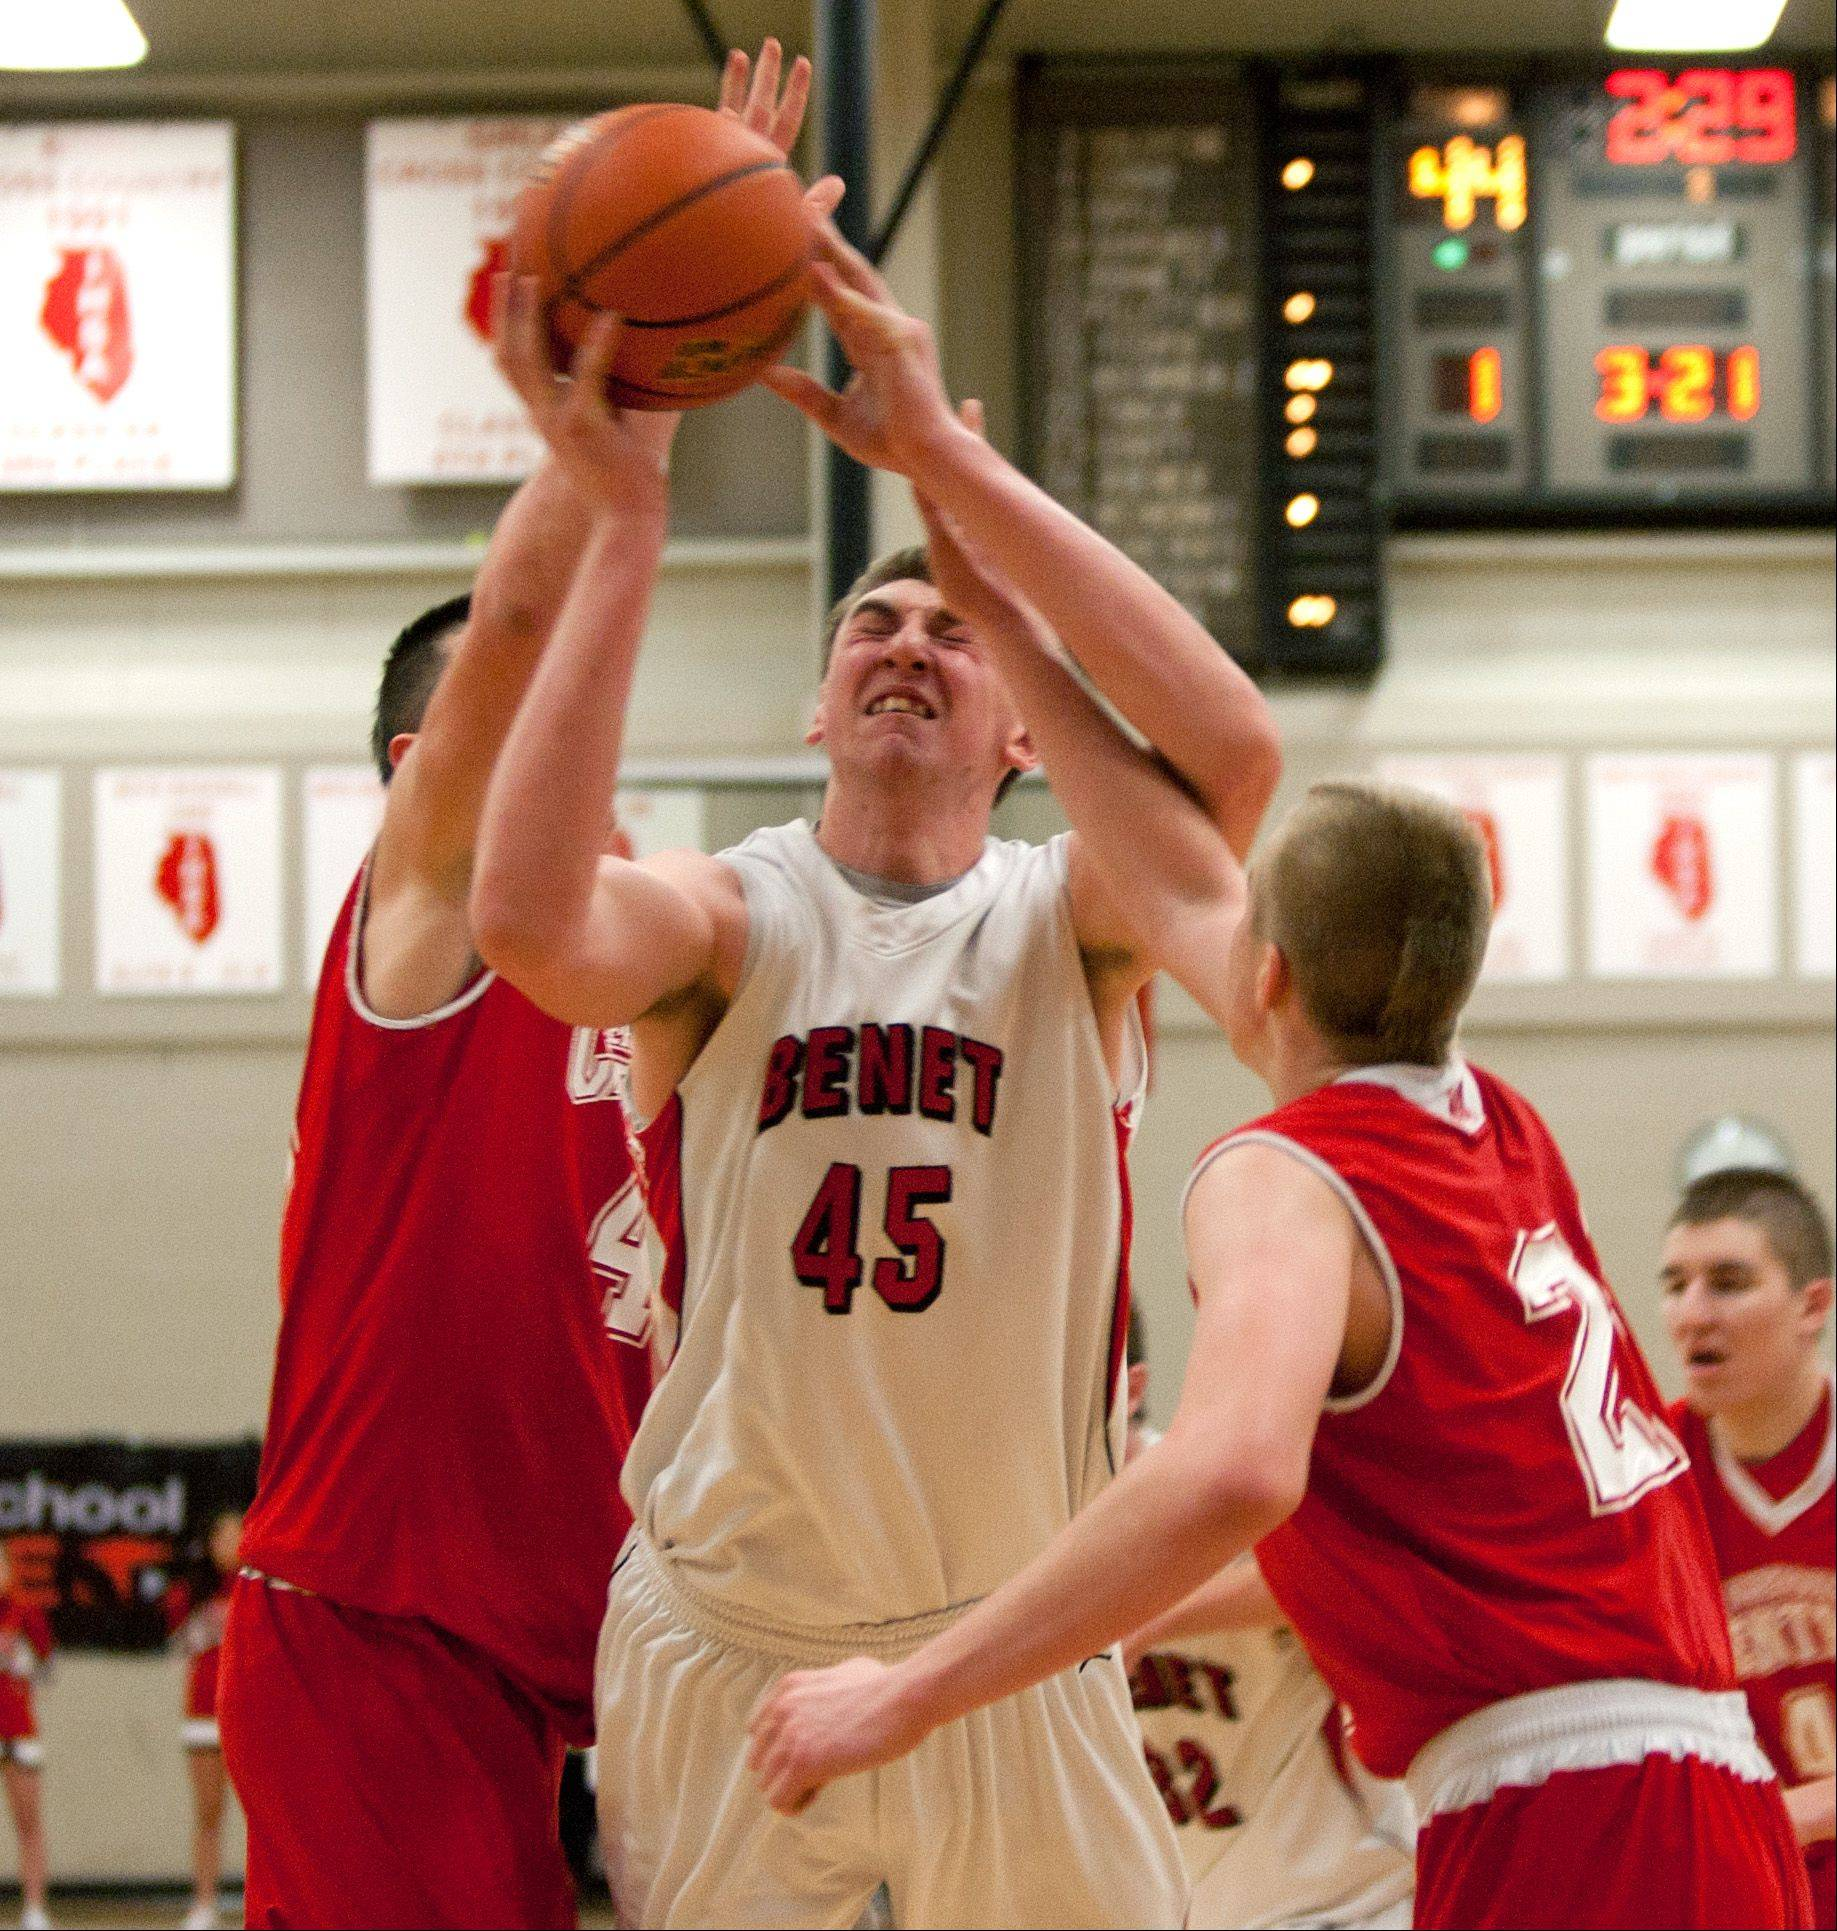 Benet's Sean O'Mara drives to the basket.